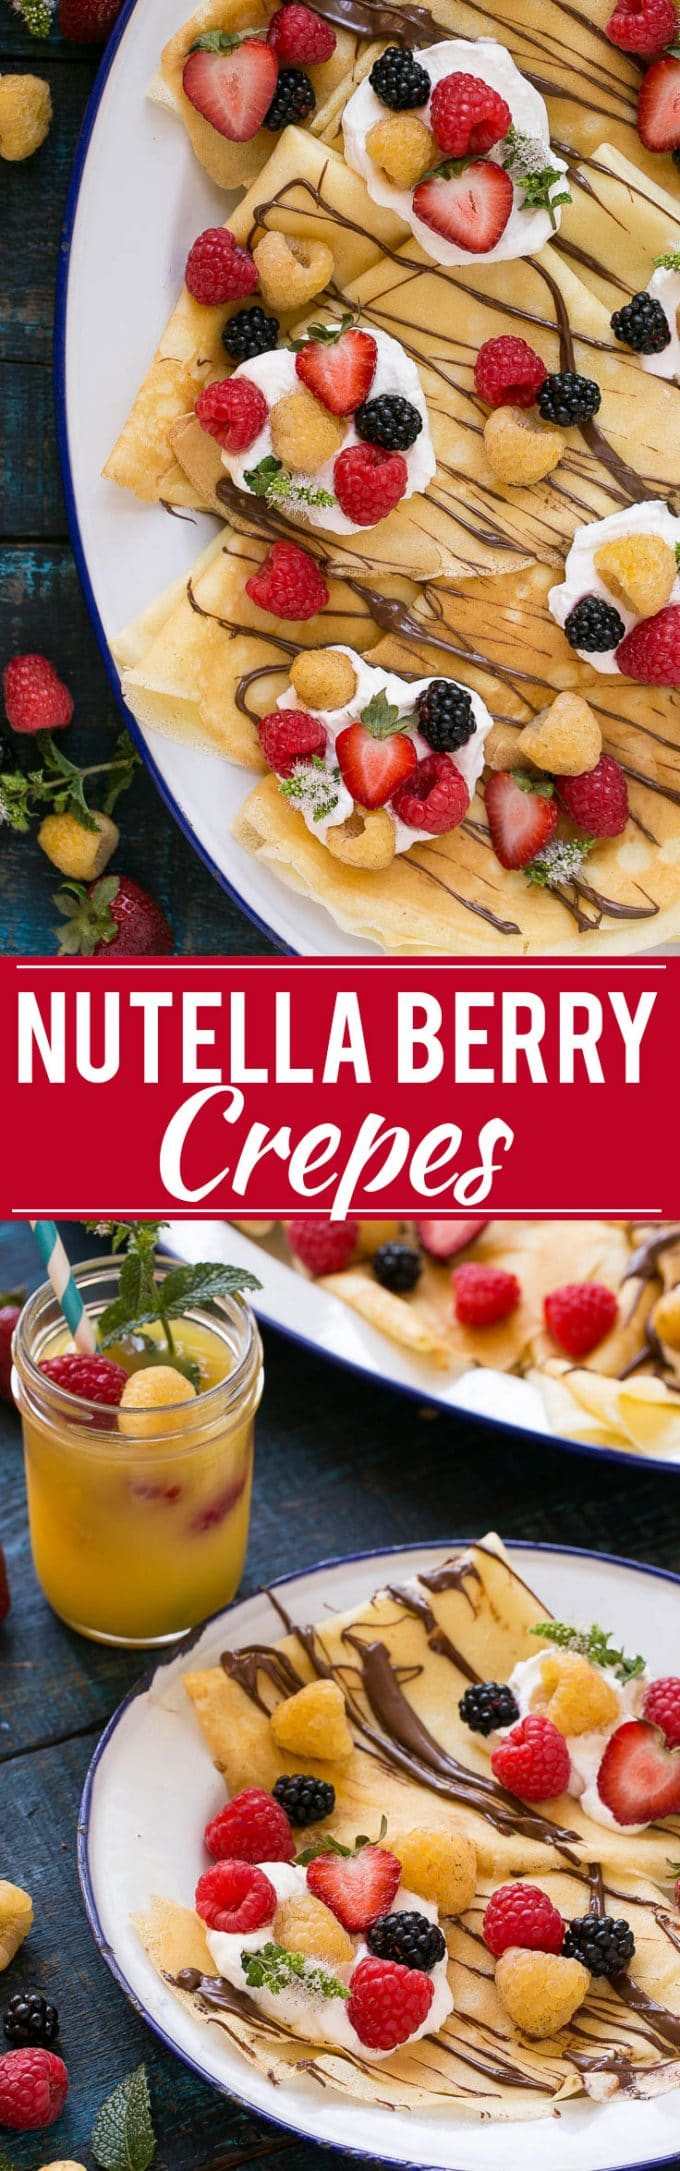 Nutella Crepes with Berries Recipe | Crepes with Berries and Nutella | Best Crepes | Easy Crepes